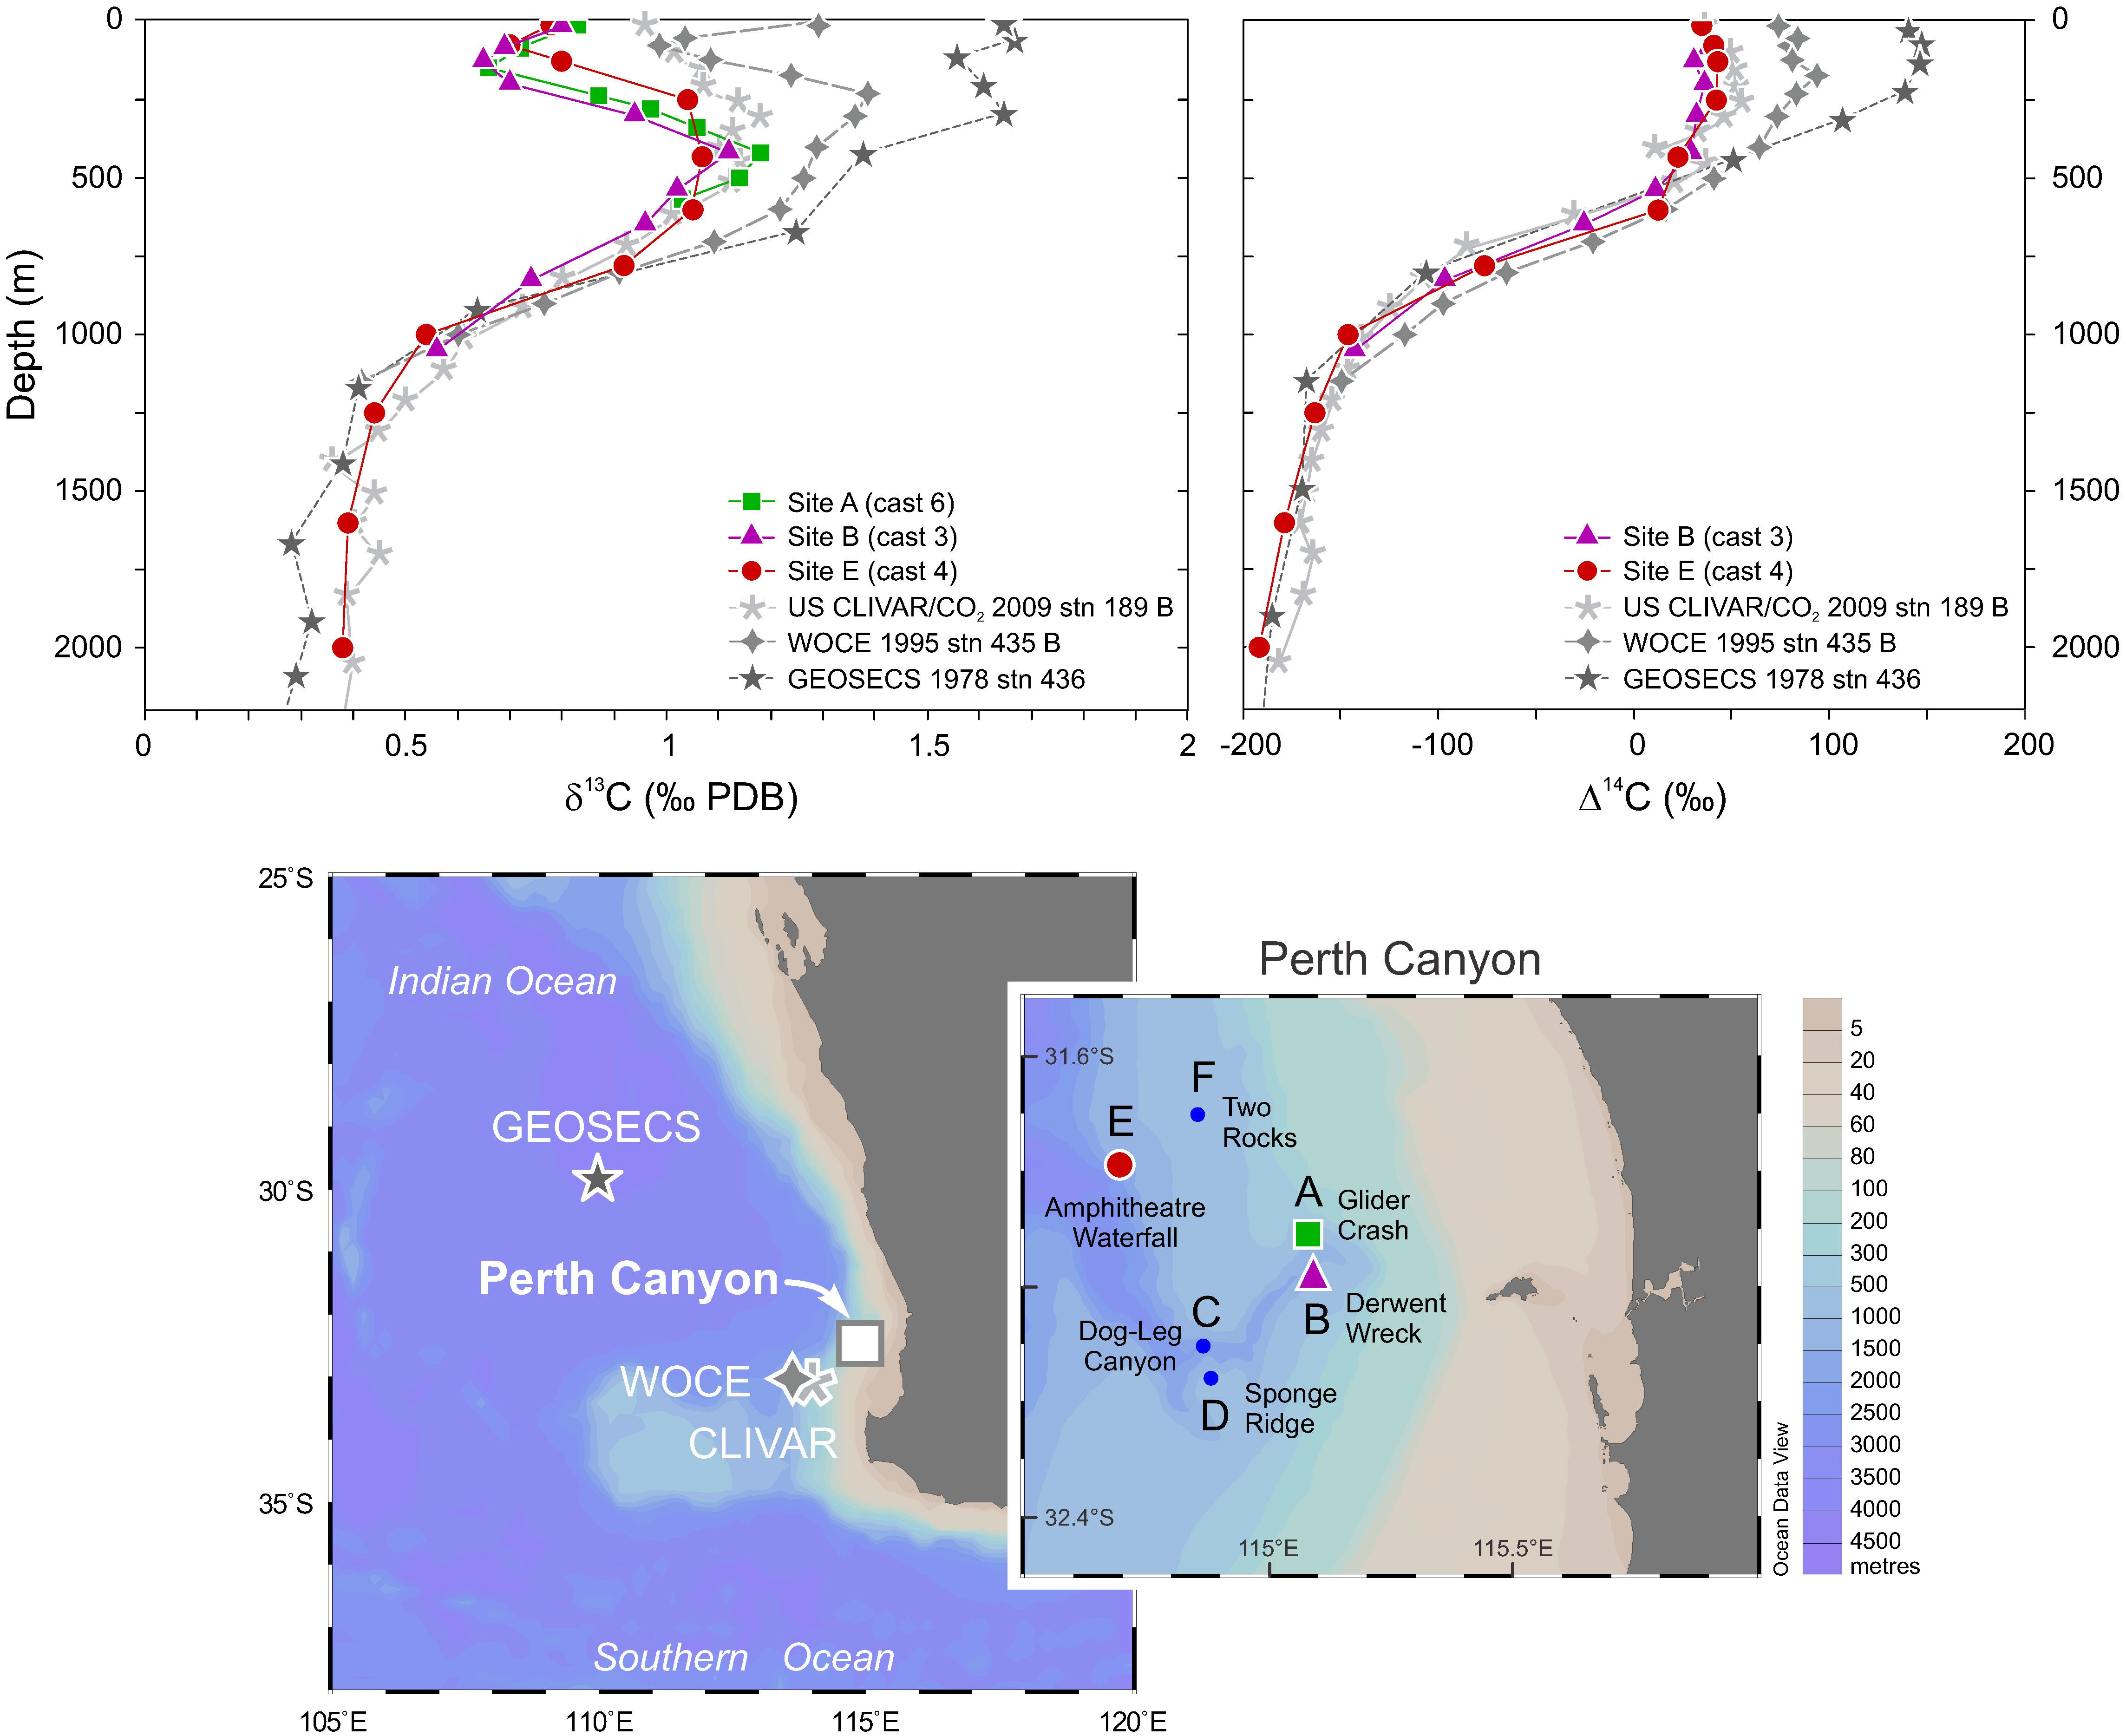 Frontiers | First ROV Exploration of the Perth Canyon